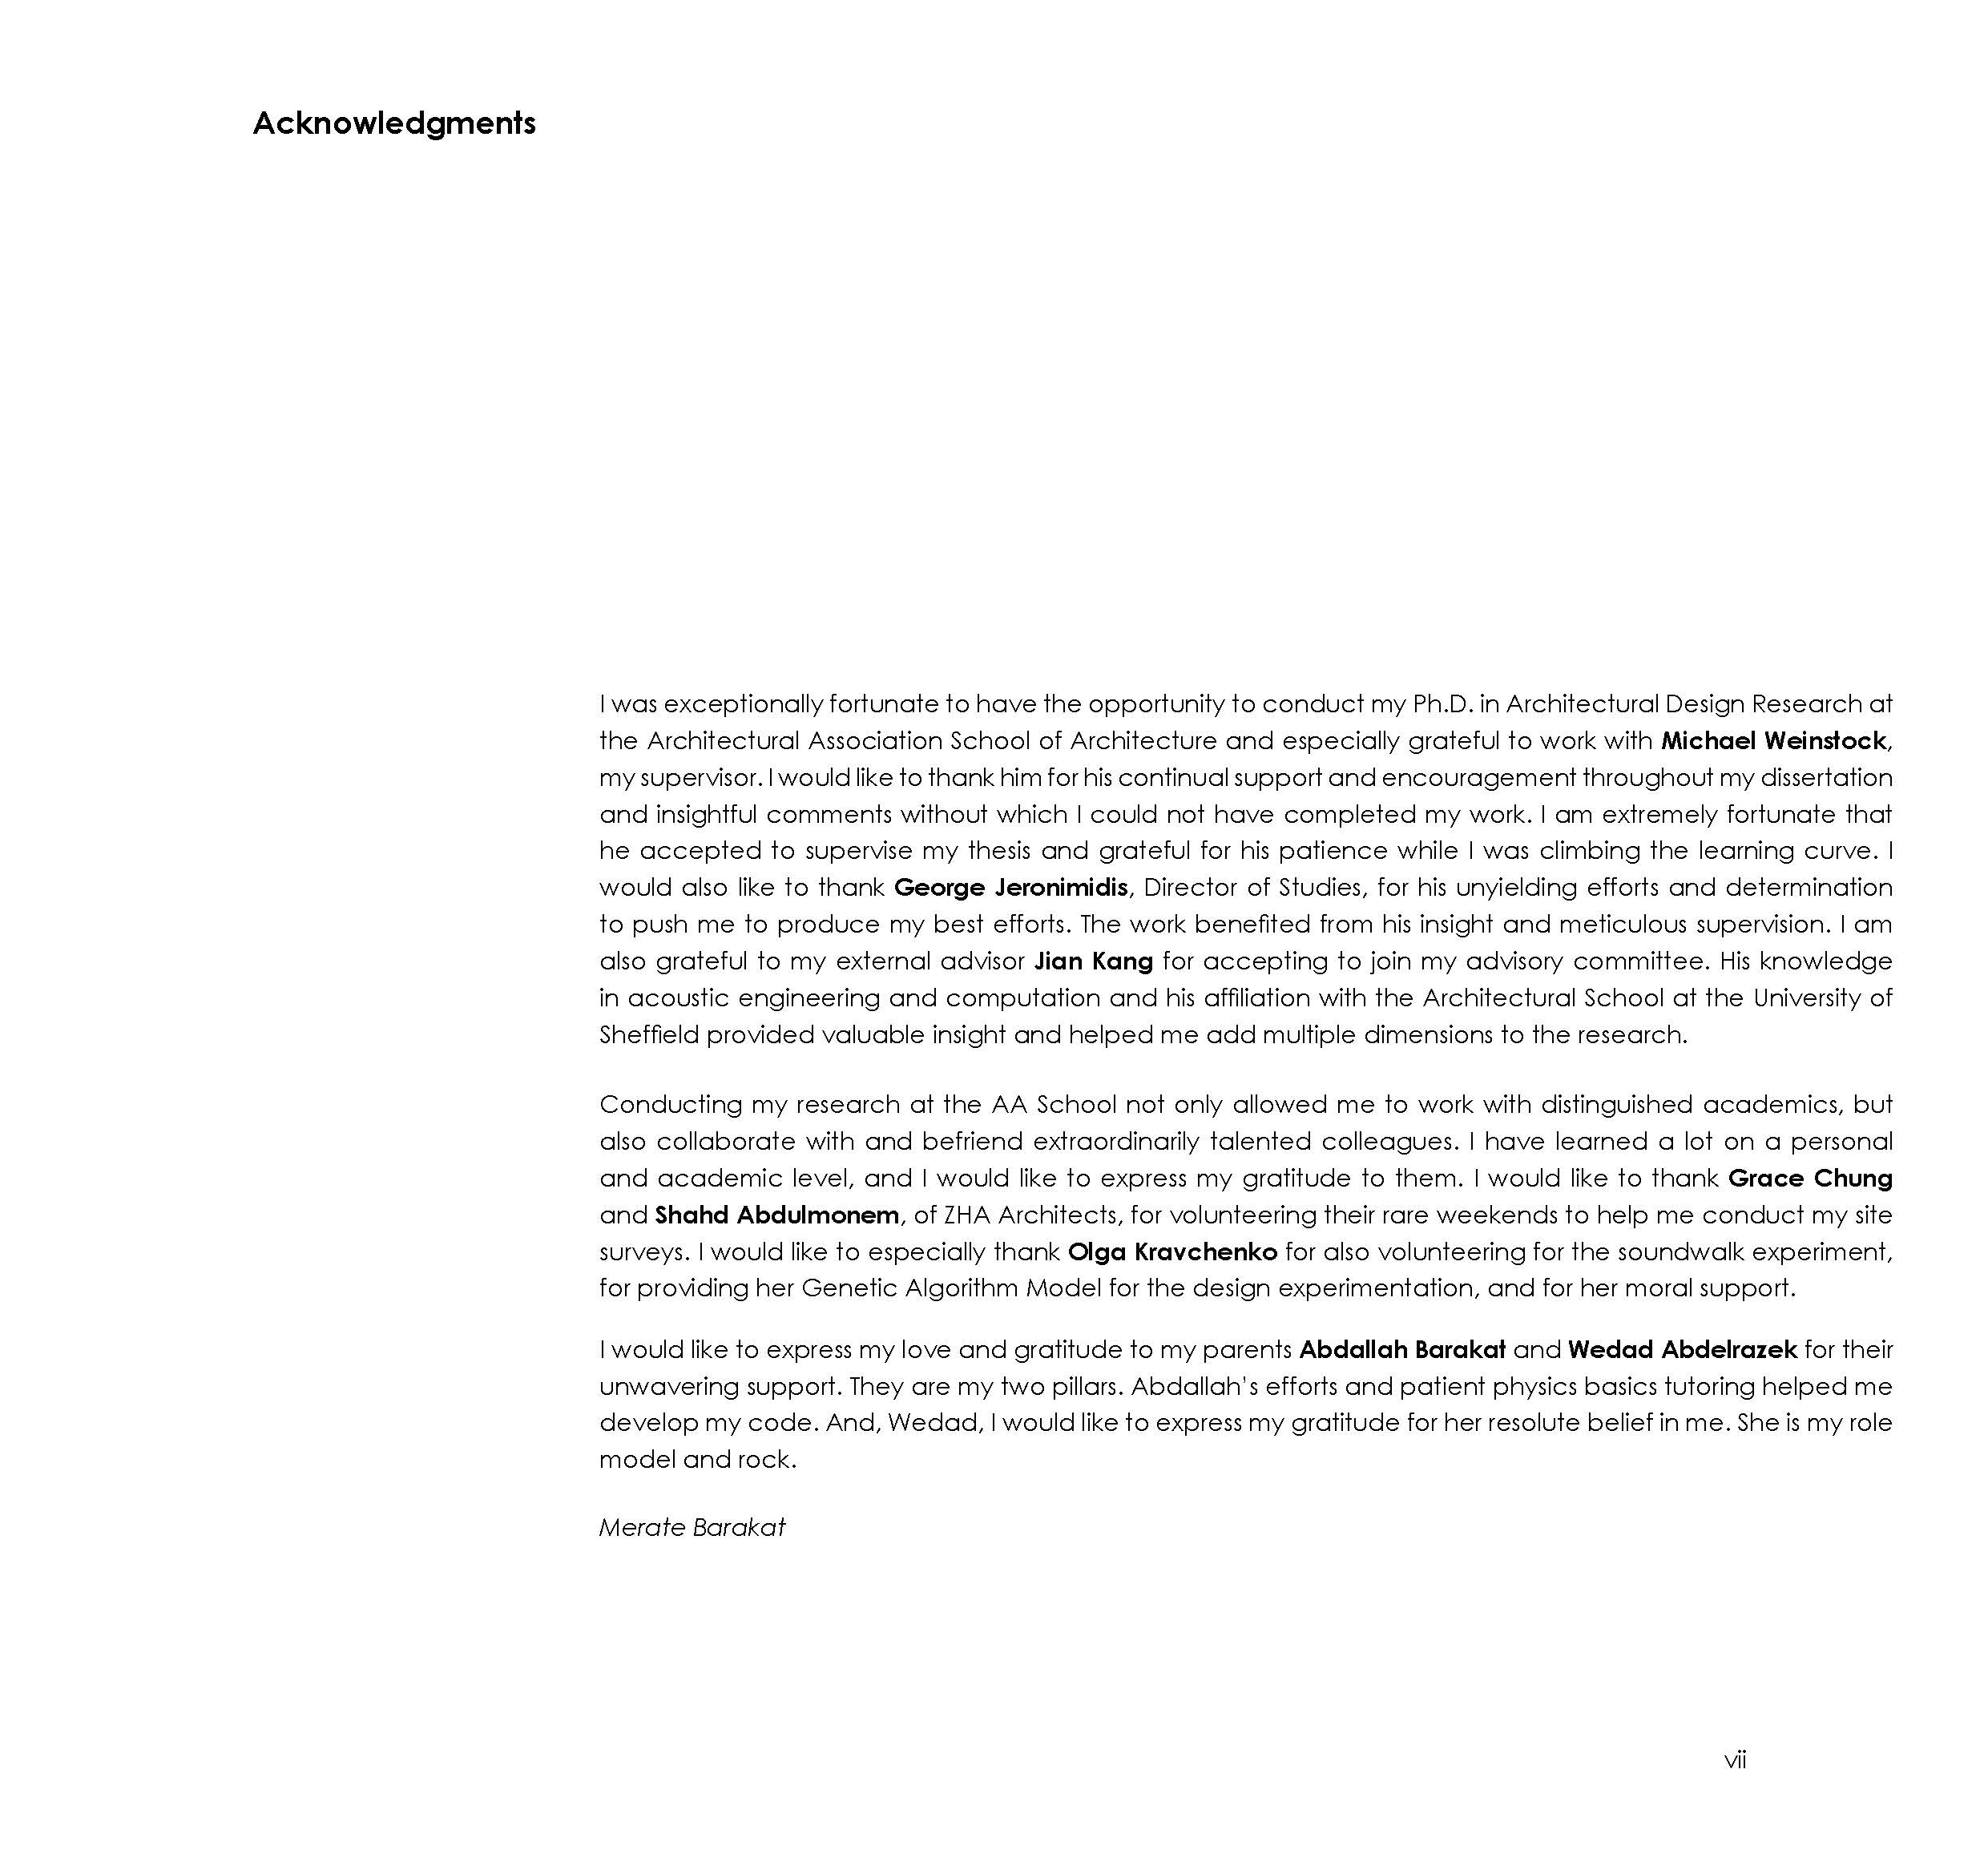 16.03.03_Thesis_01_Interactive_Page_009.jpg